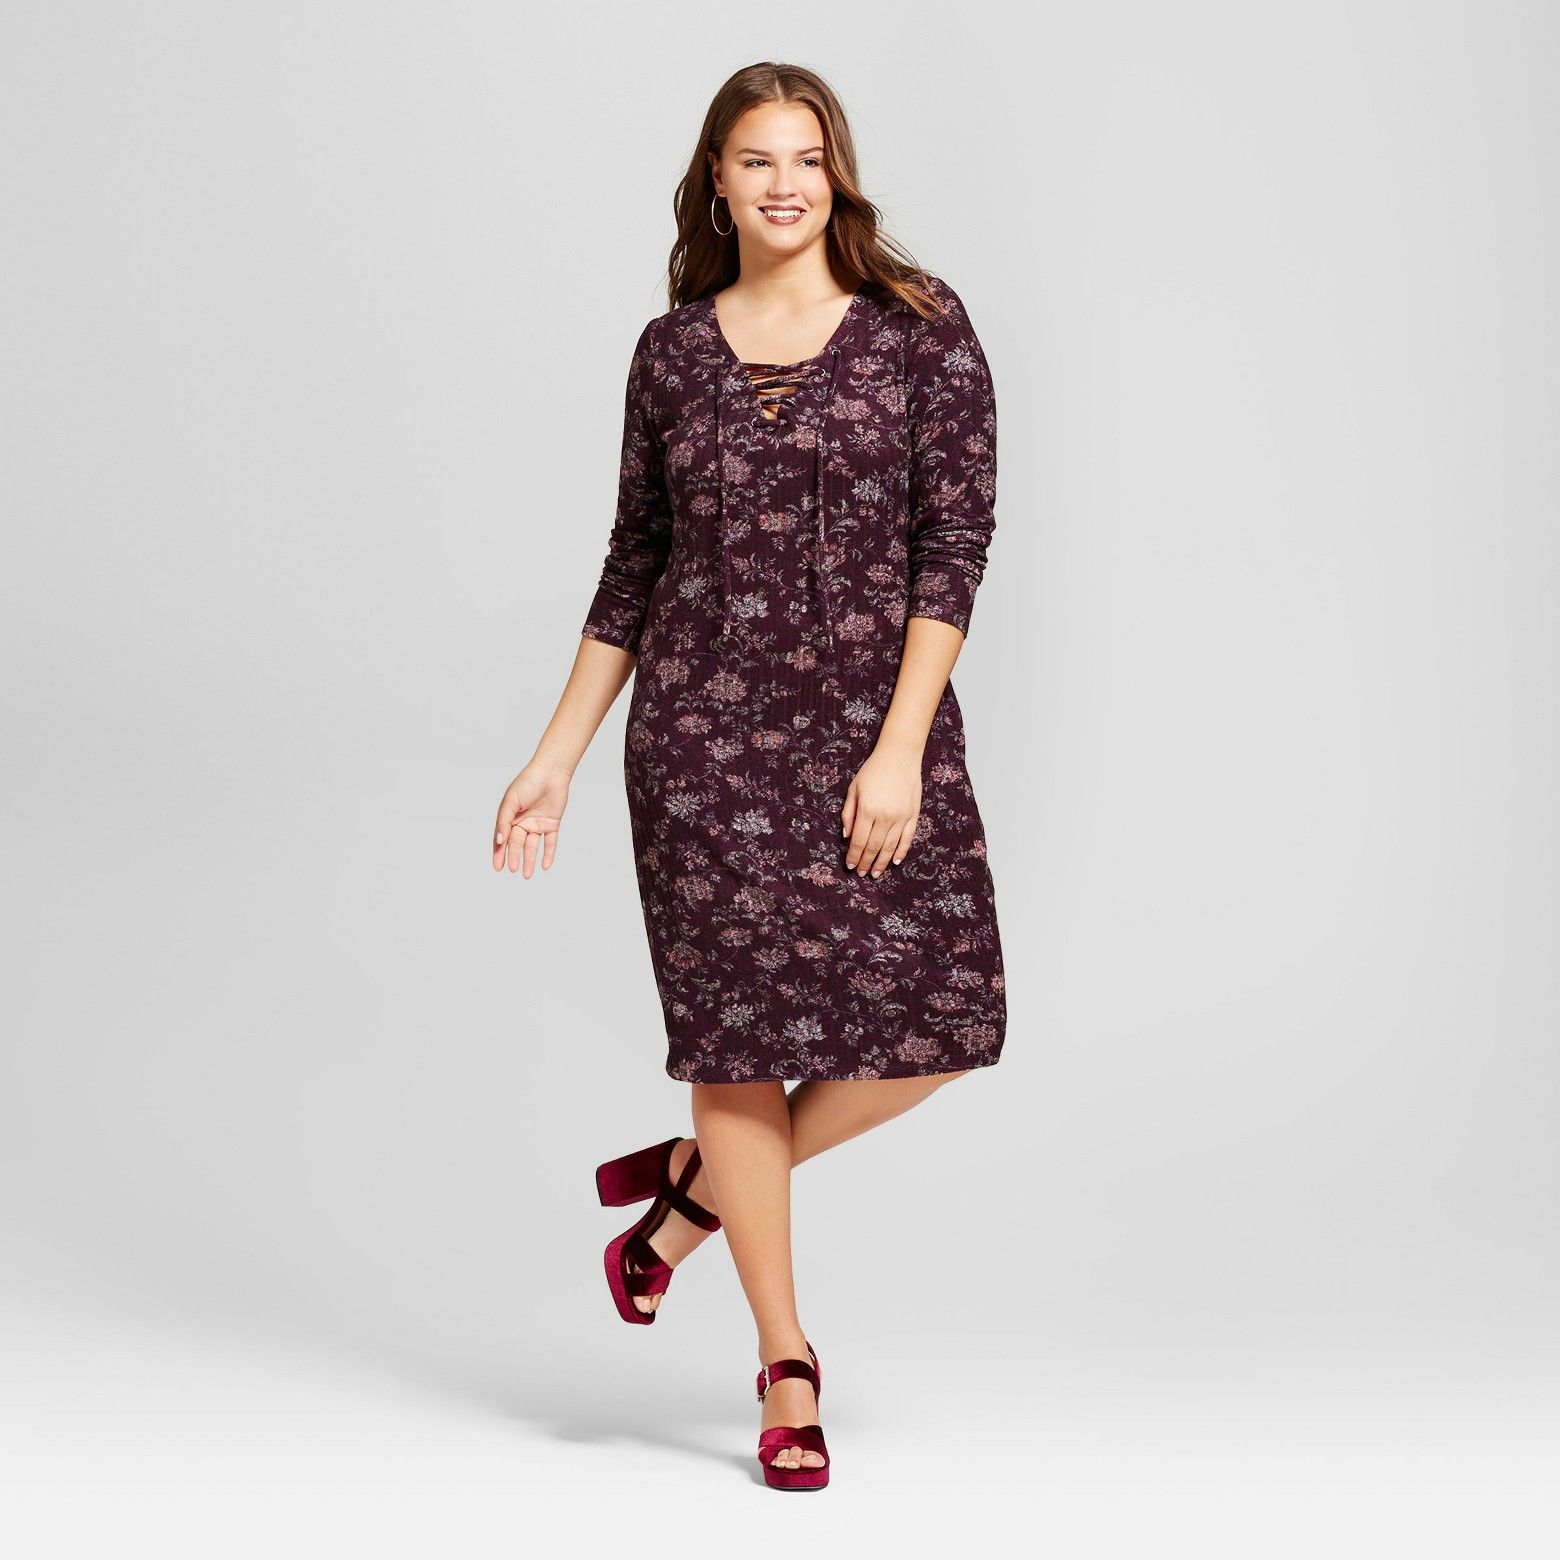 aaaf1fa107e Women s Plus Size Cozy Floral Print Lace Up Dress - Xhilaration™   Target